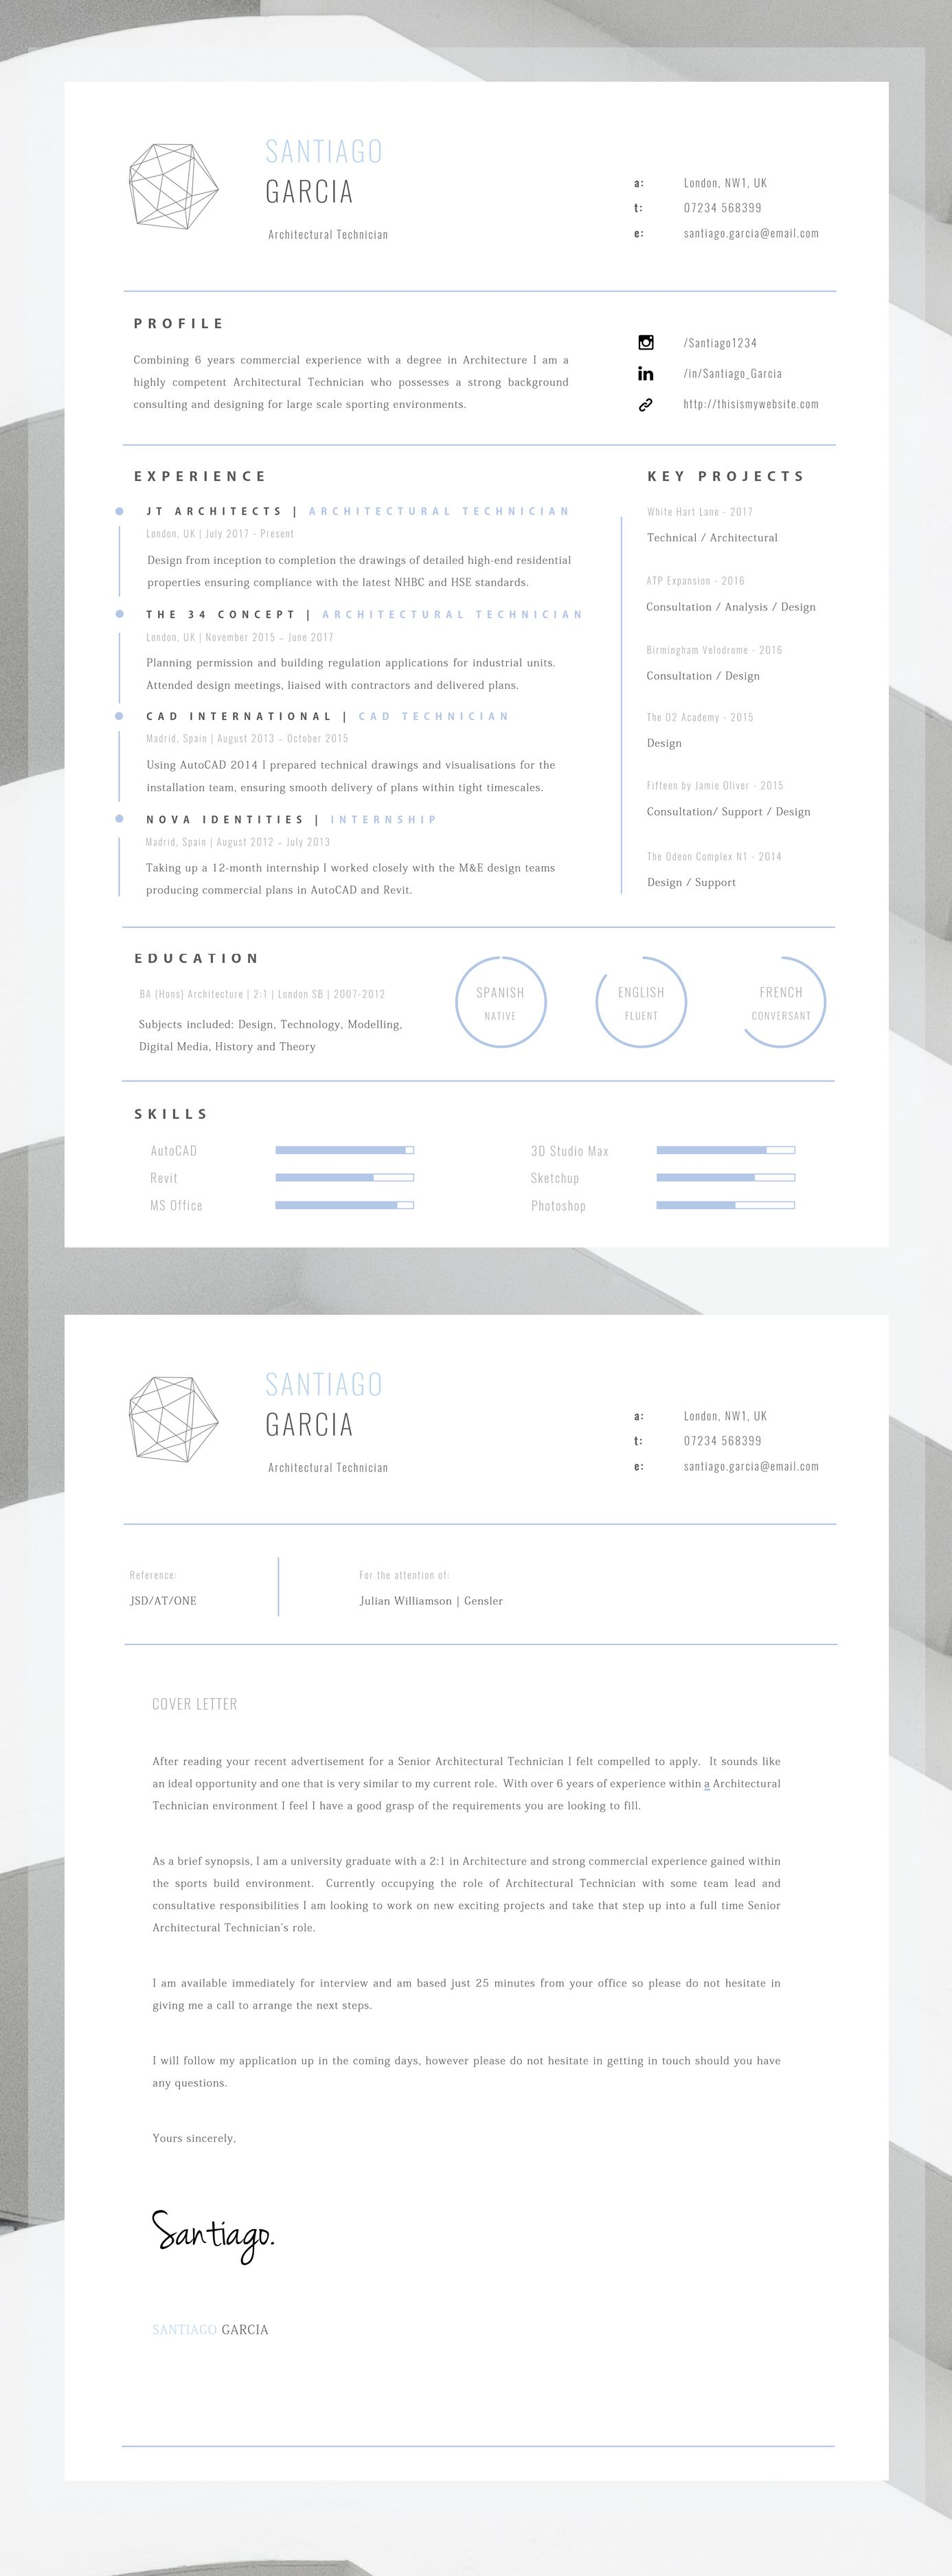 Professional Resume For Word + Cover Letter + Resume Advice